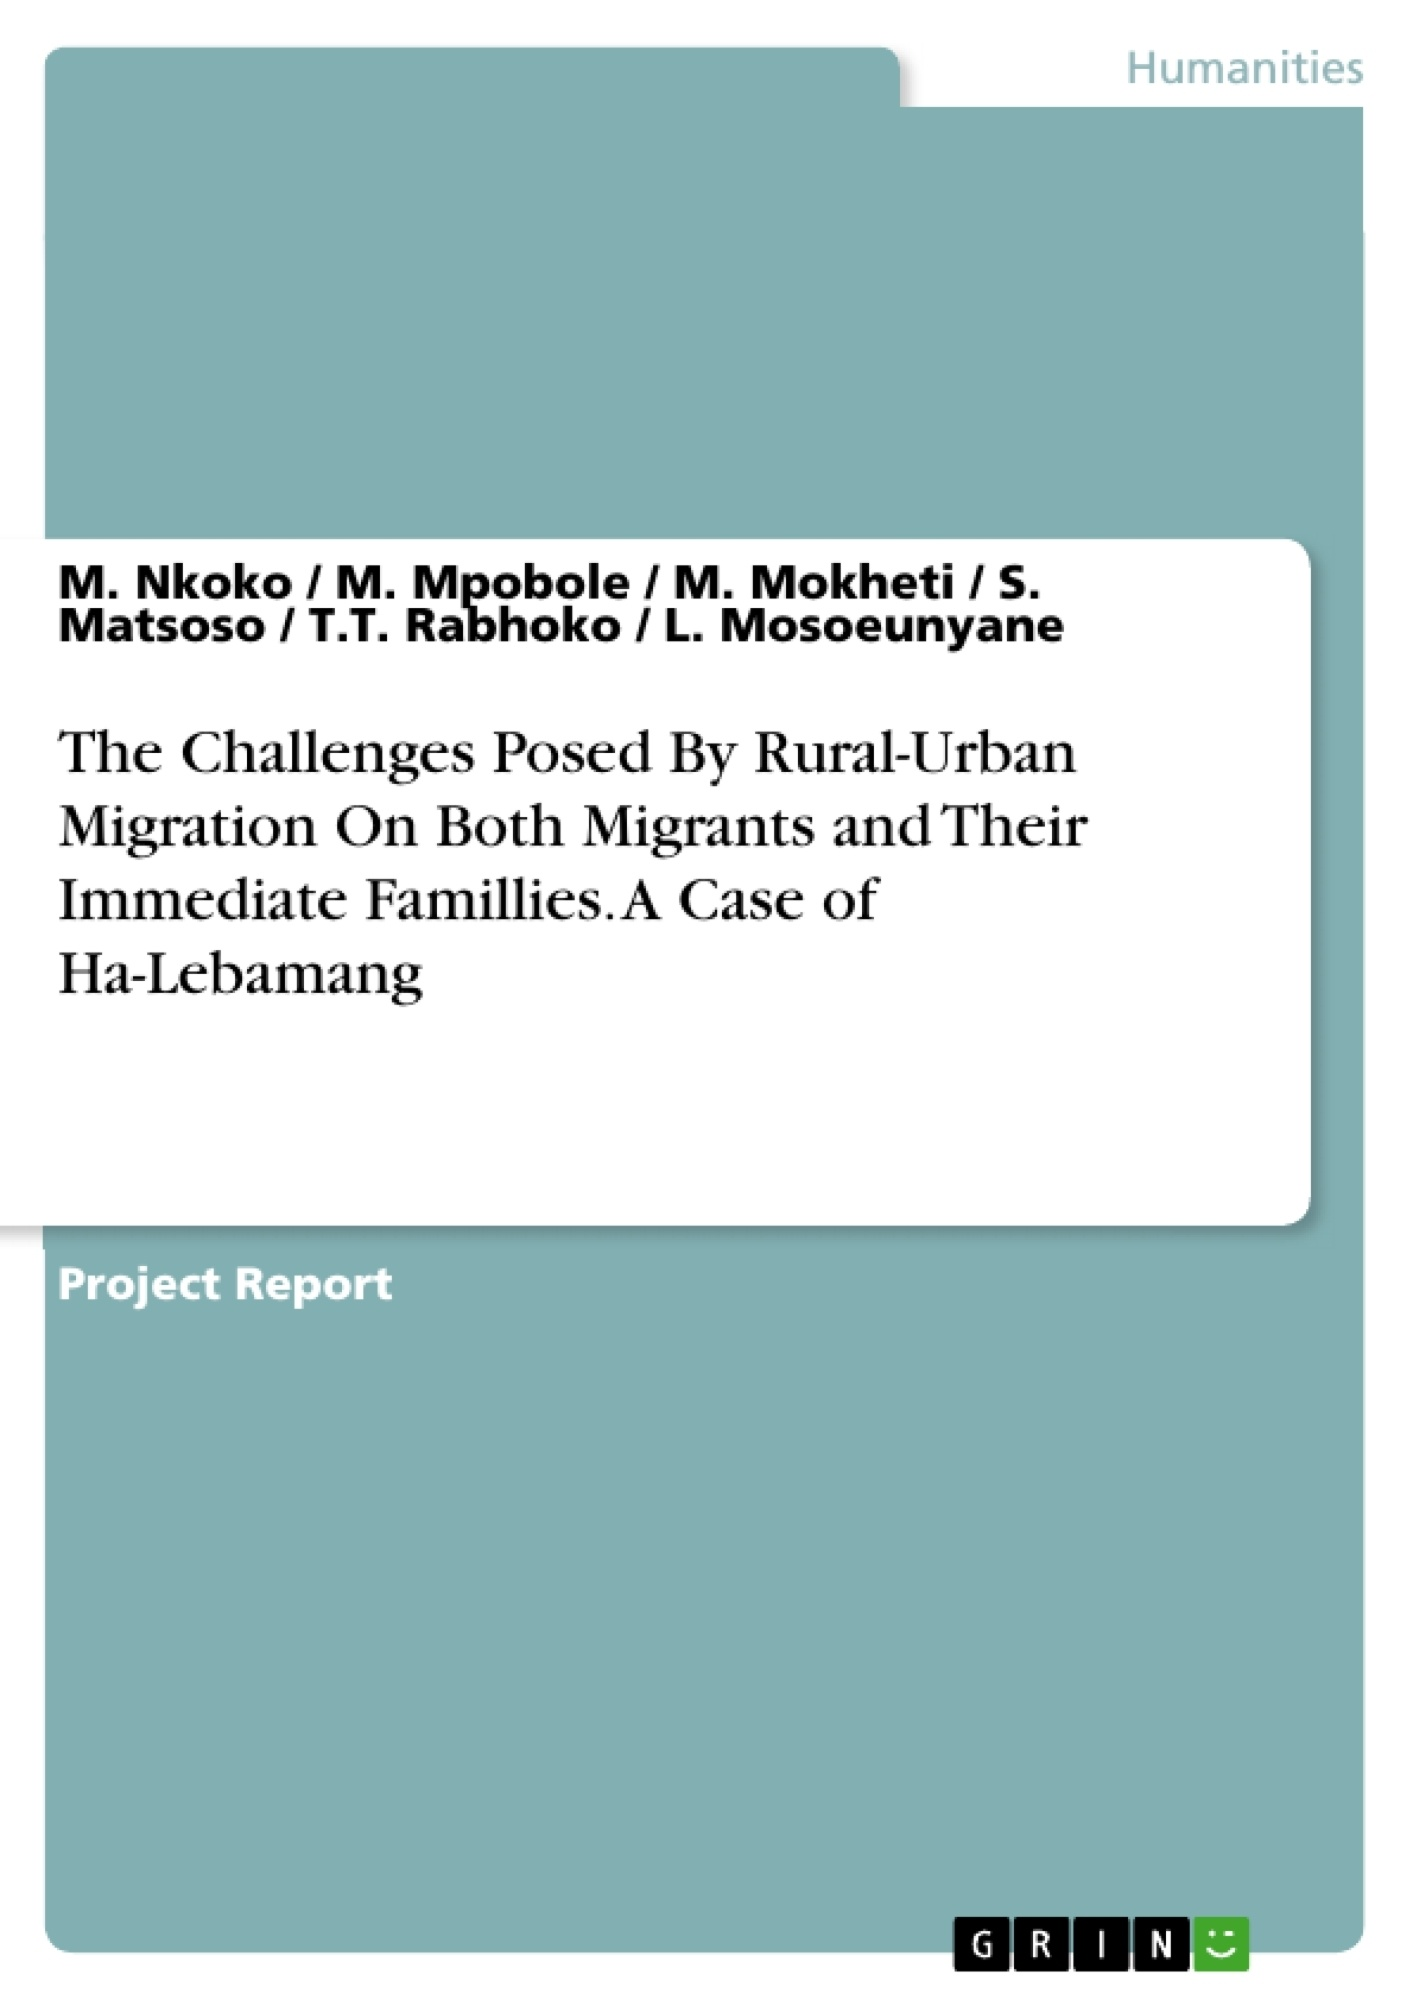 Title: The Challenges Posed By Rural-Urban Migration On Both Migrants and Their Immediate Famillies. A Case of Ha-Lebamang